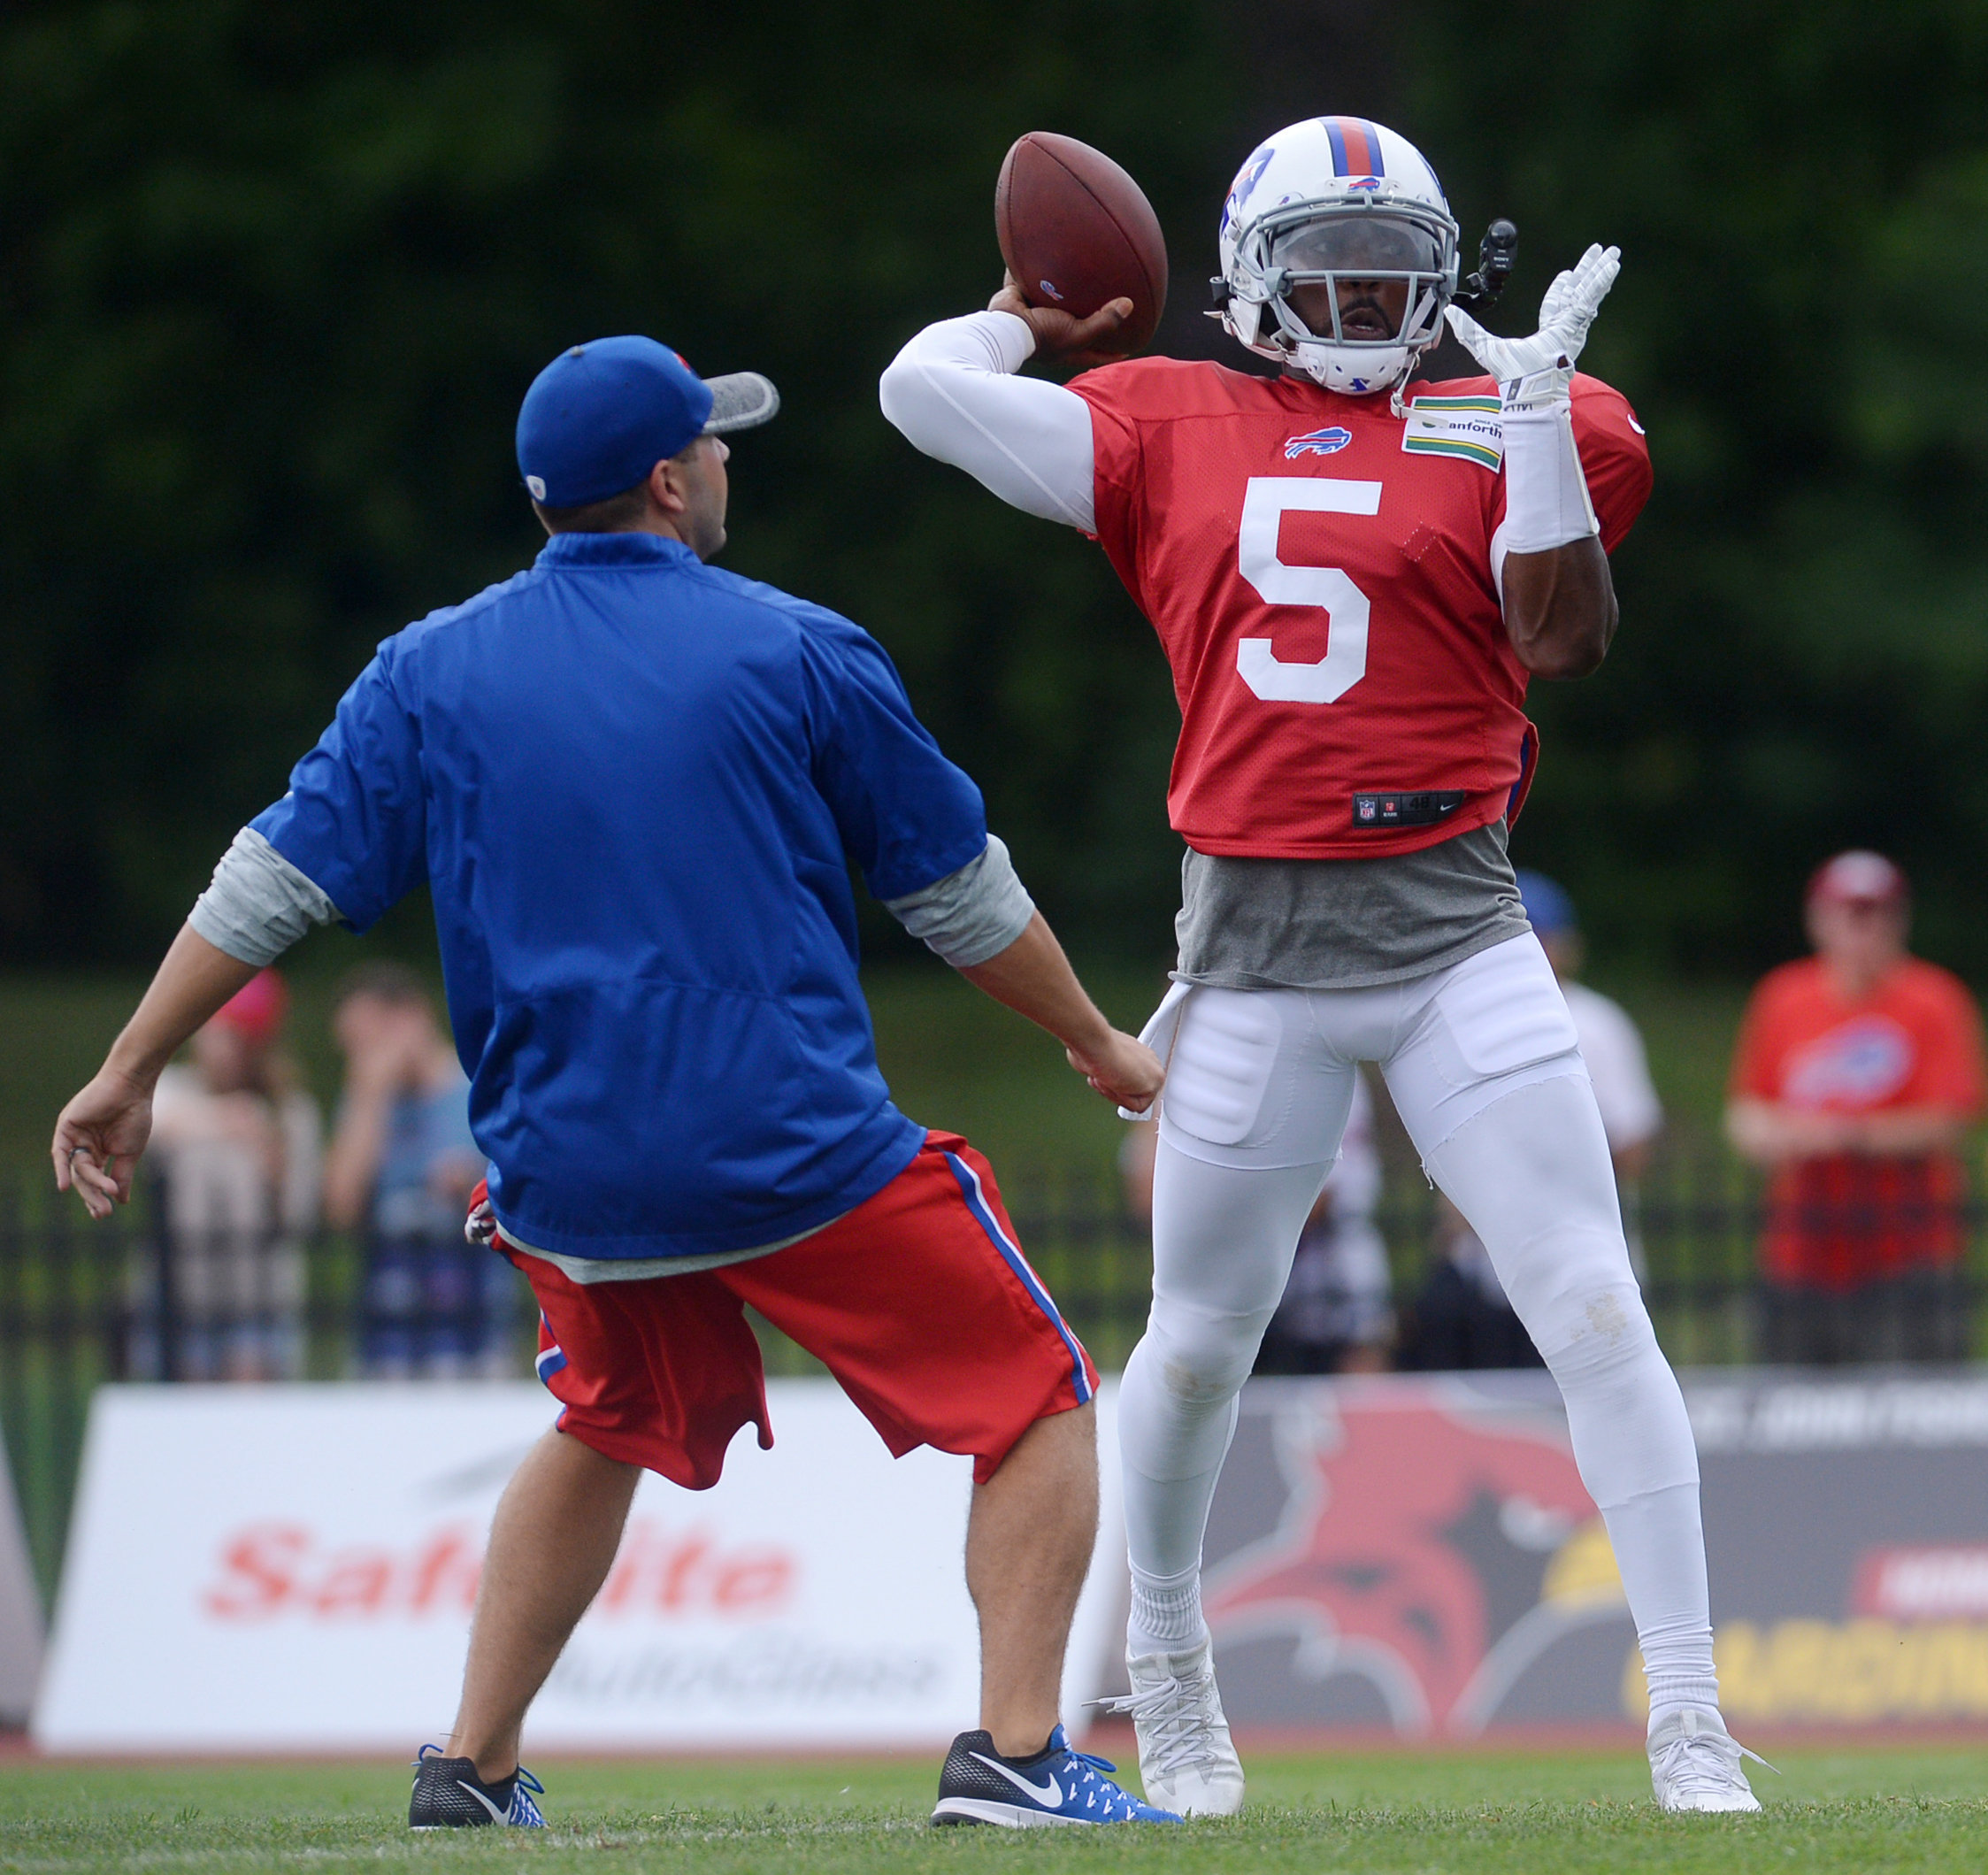 Buffalo Bills quarterback Tyrod Taylor throws a pass during practice at the NFL football team training camp in Pittsford, N.Y., Monday, August 1, 2016. (AP Photo/Adrian Kraus)